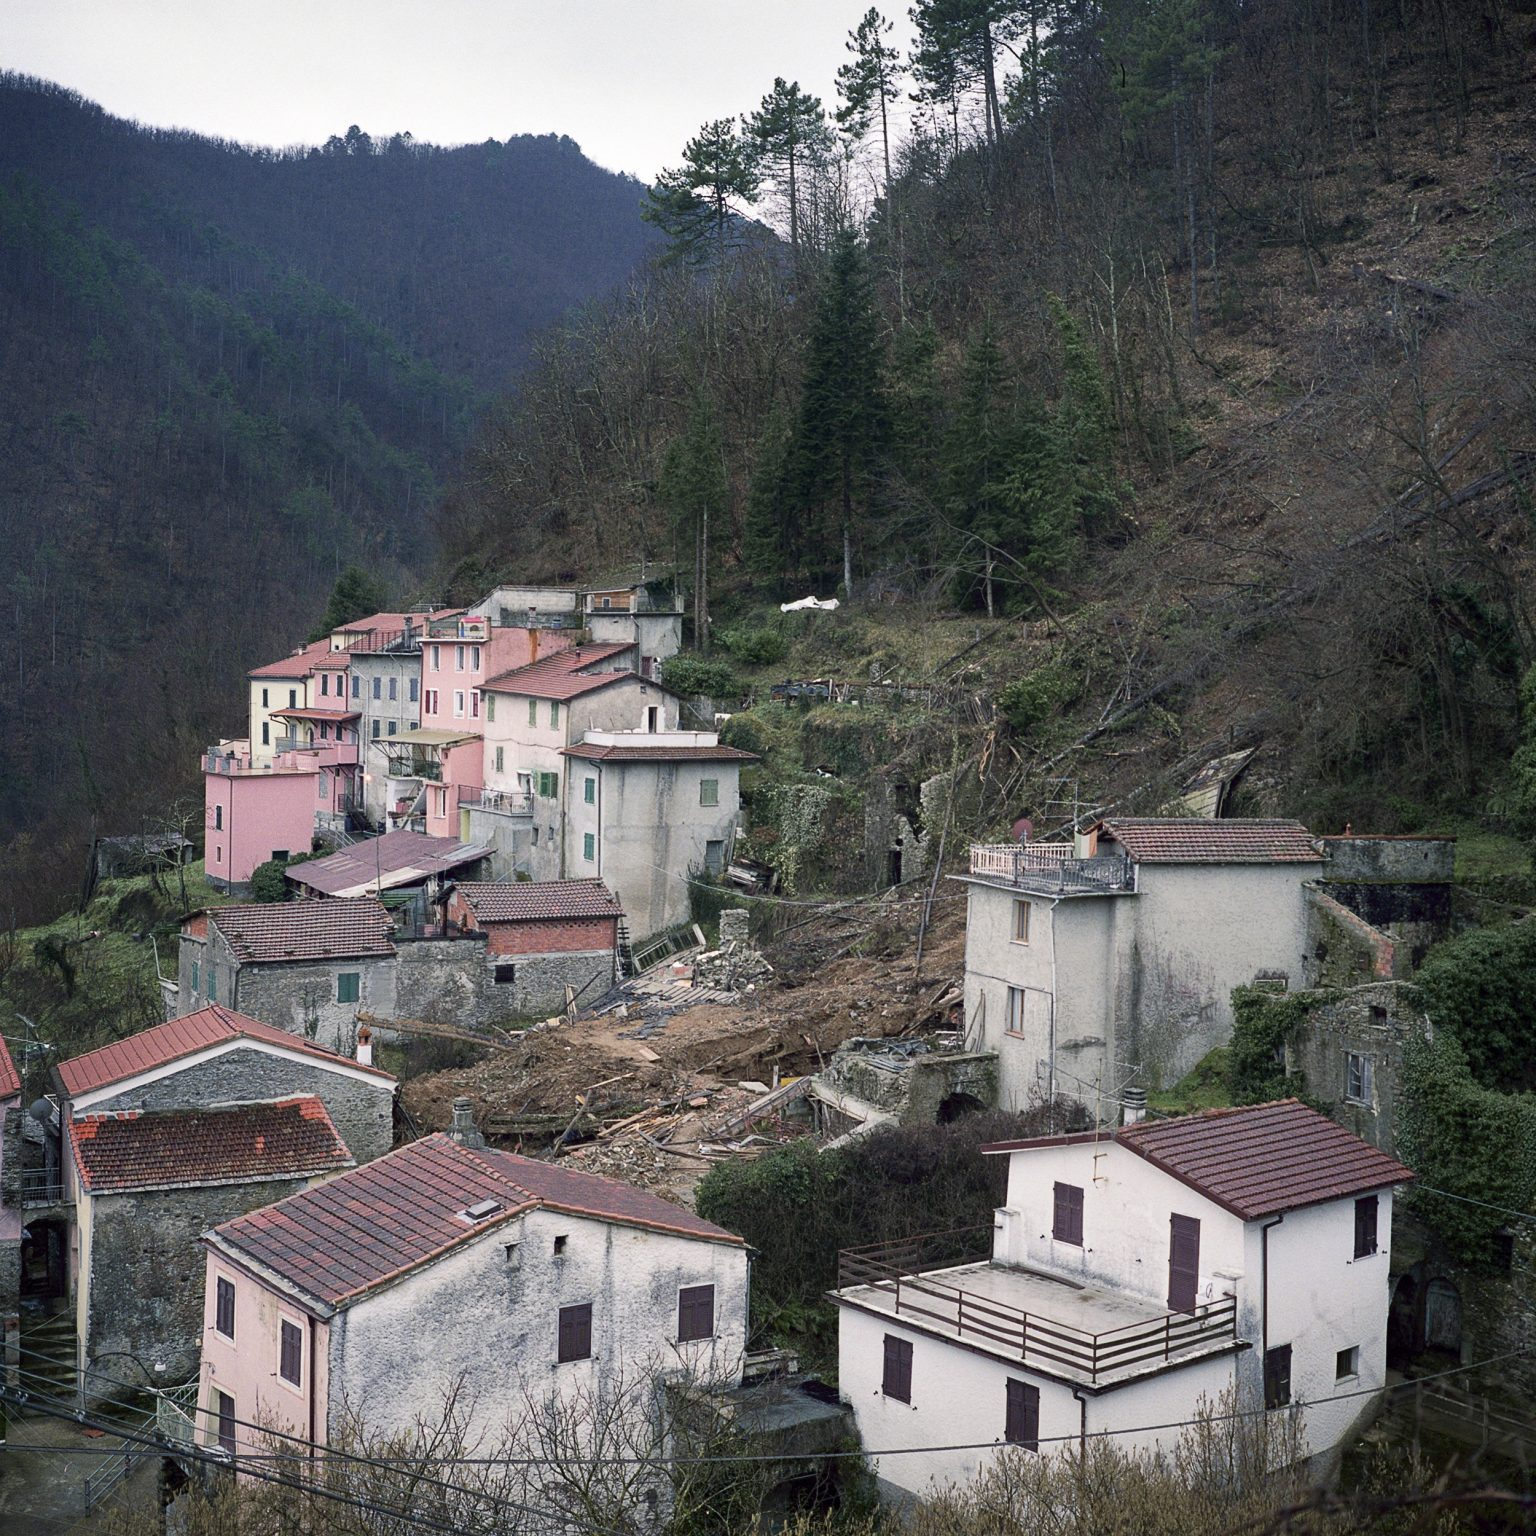 January 2012, Cassana. A view of the town of Cassana, where a landslide destroyed several buildings causing the death of 5 people.